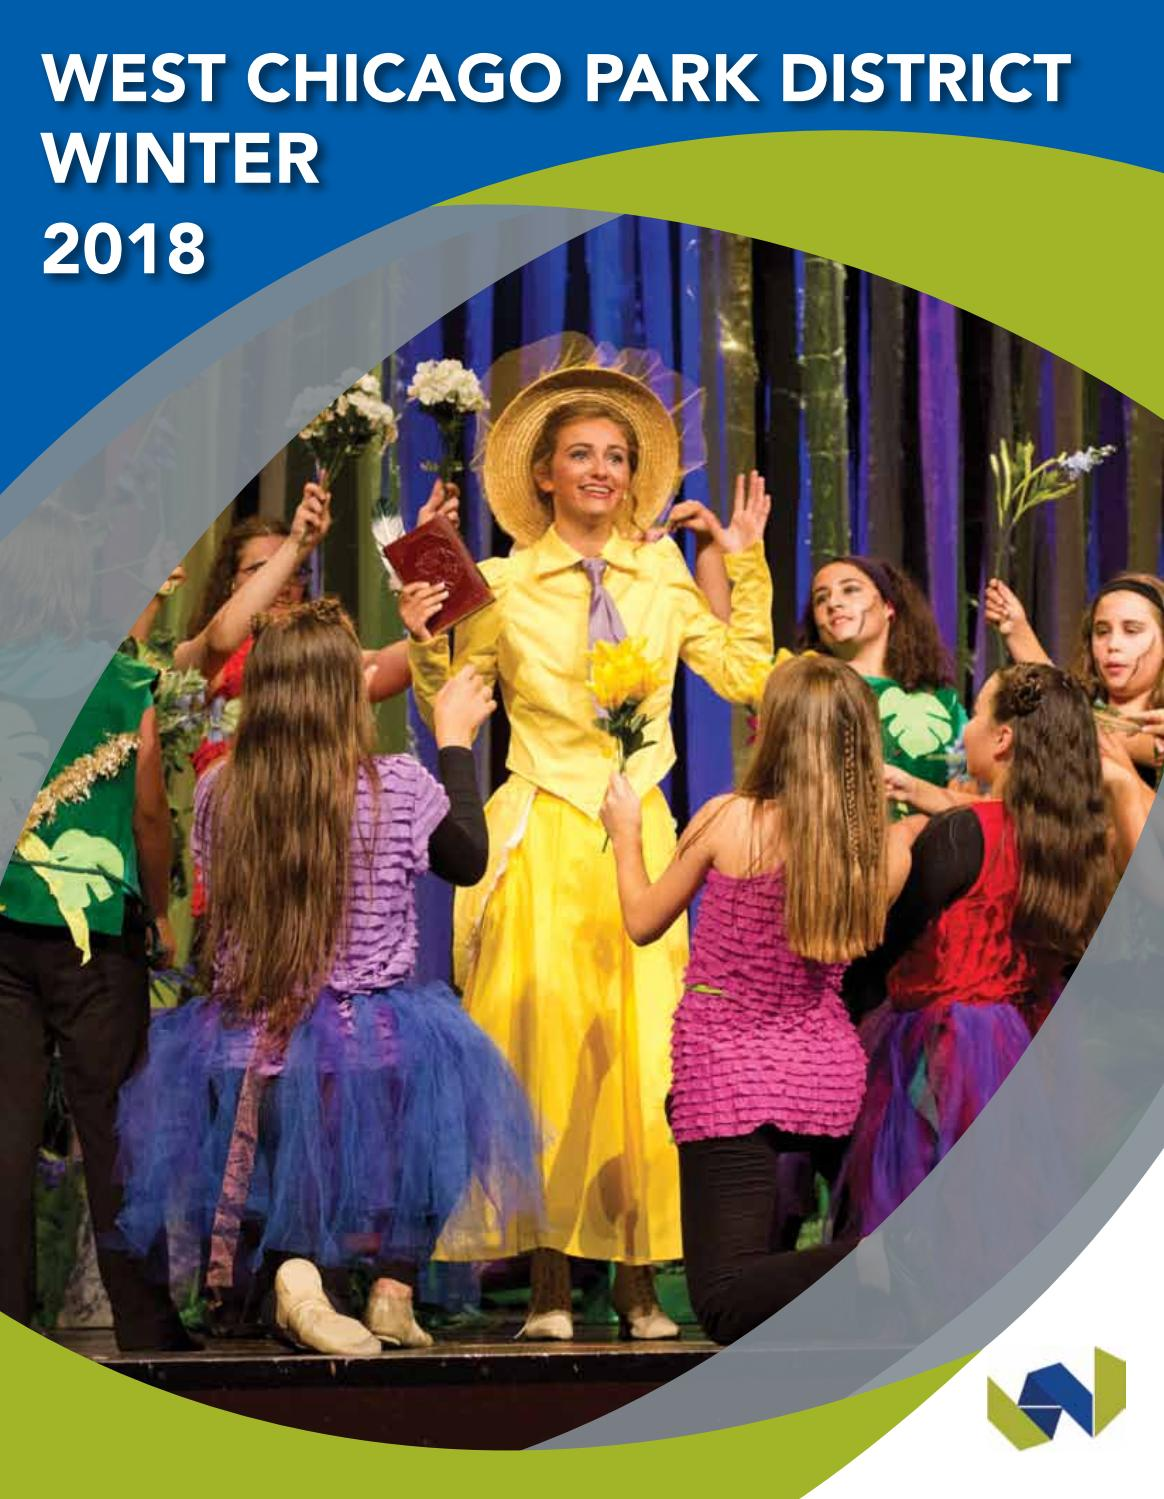 West Chicago Park District - Winter 2018 Program Guide by